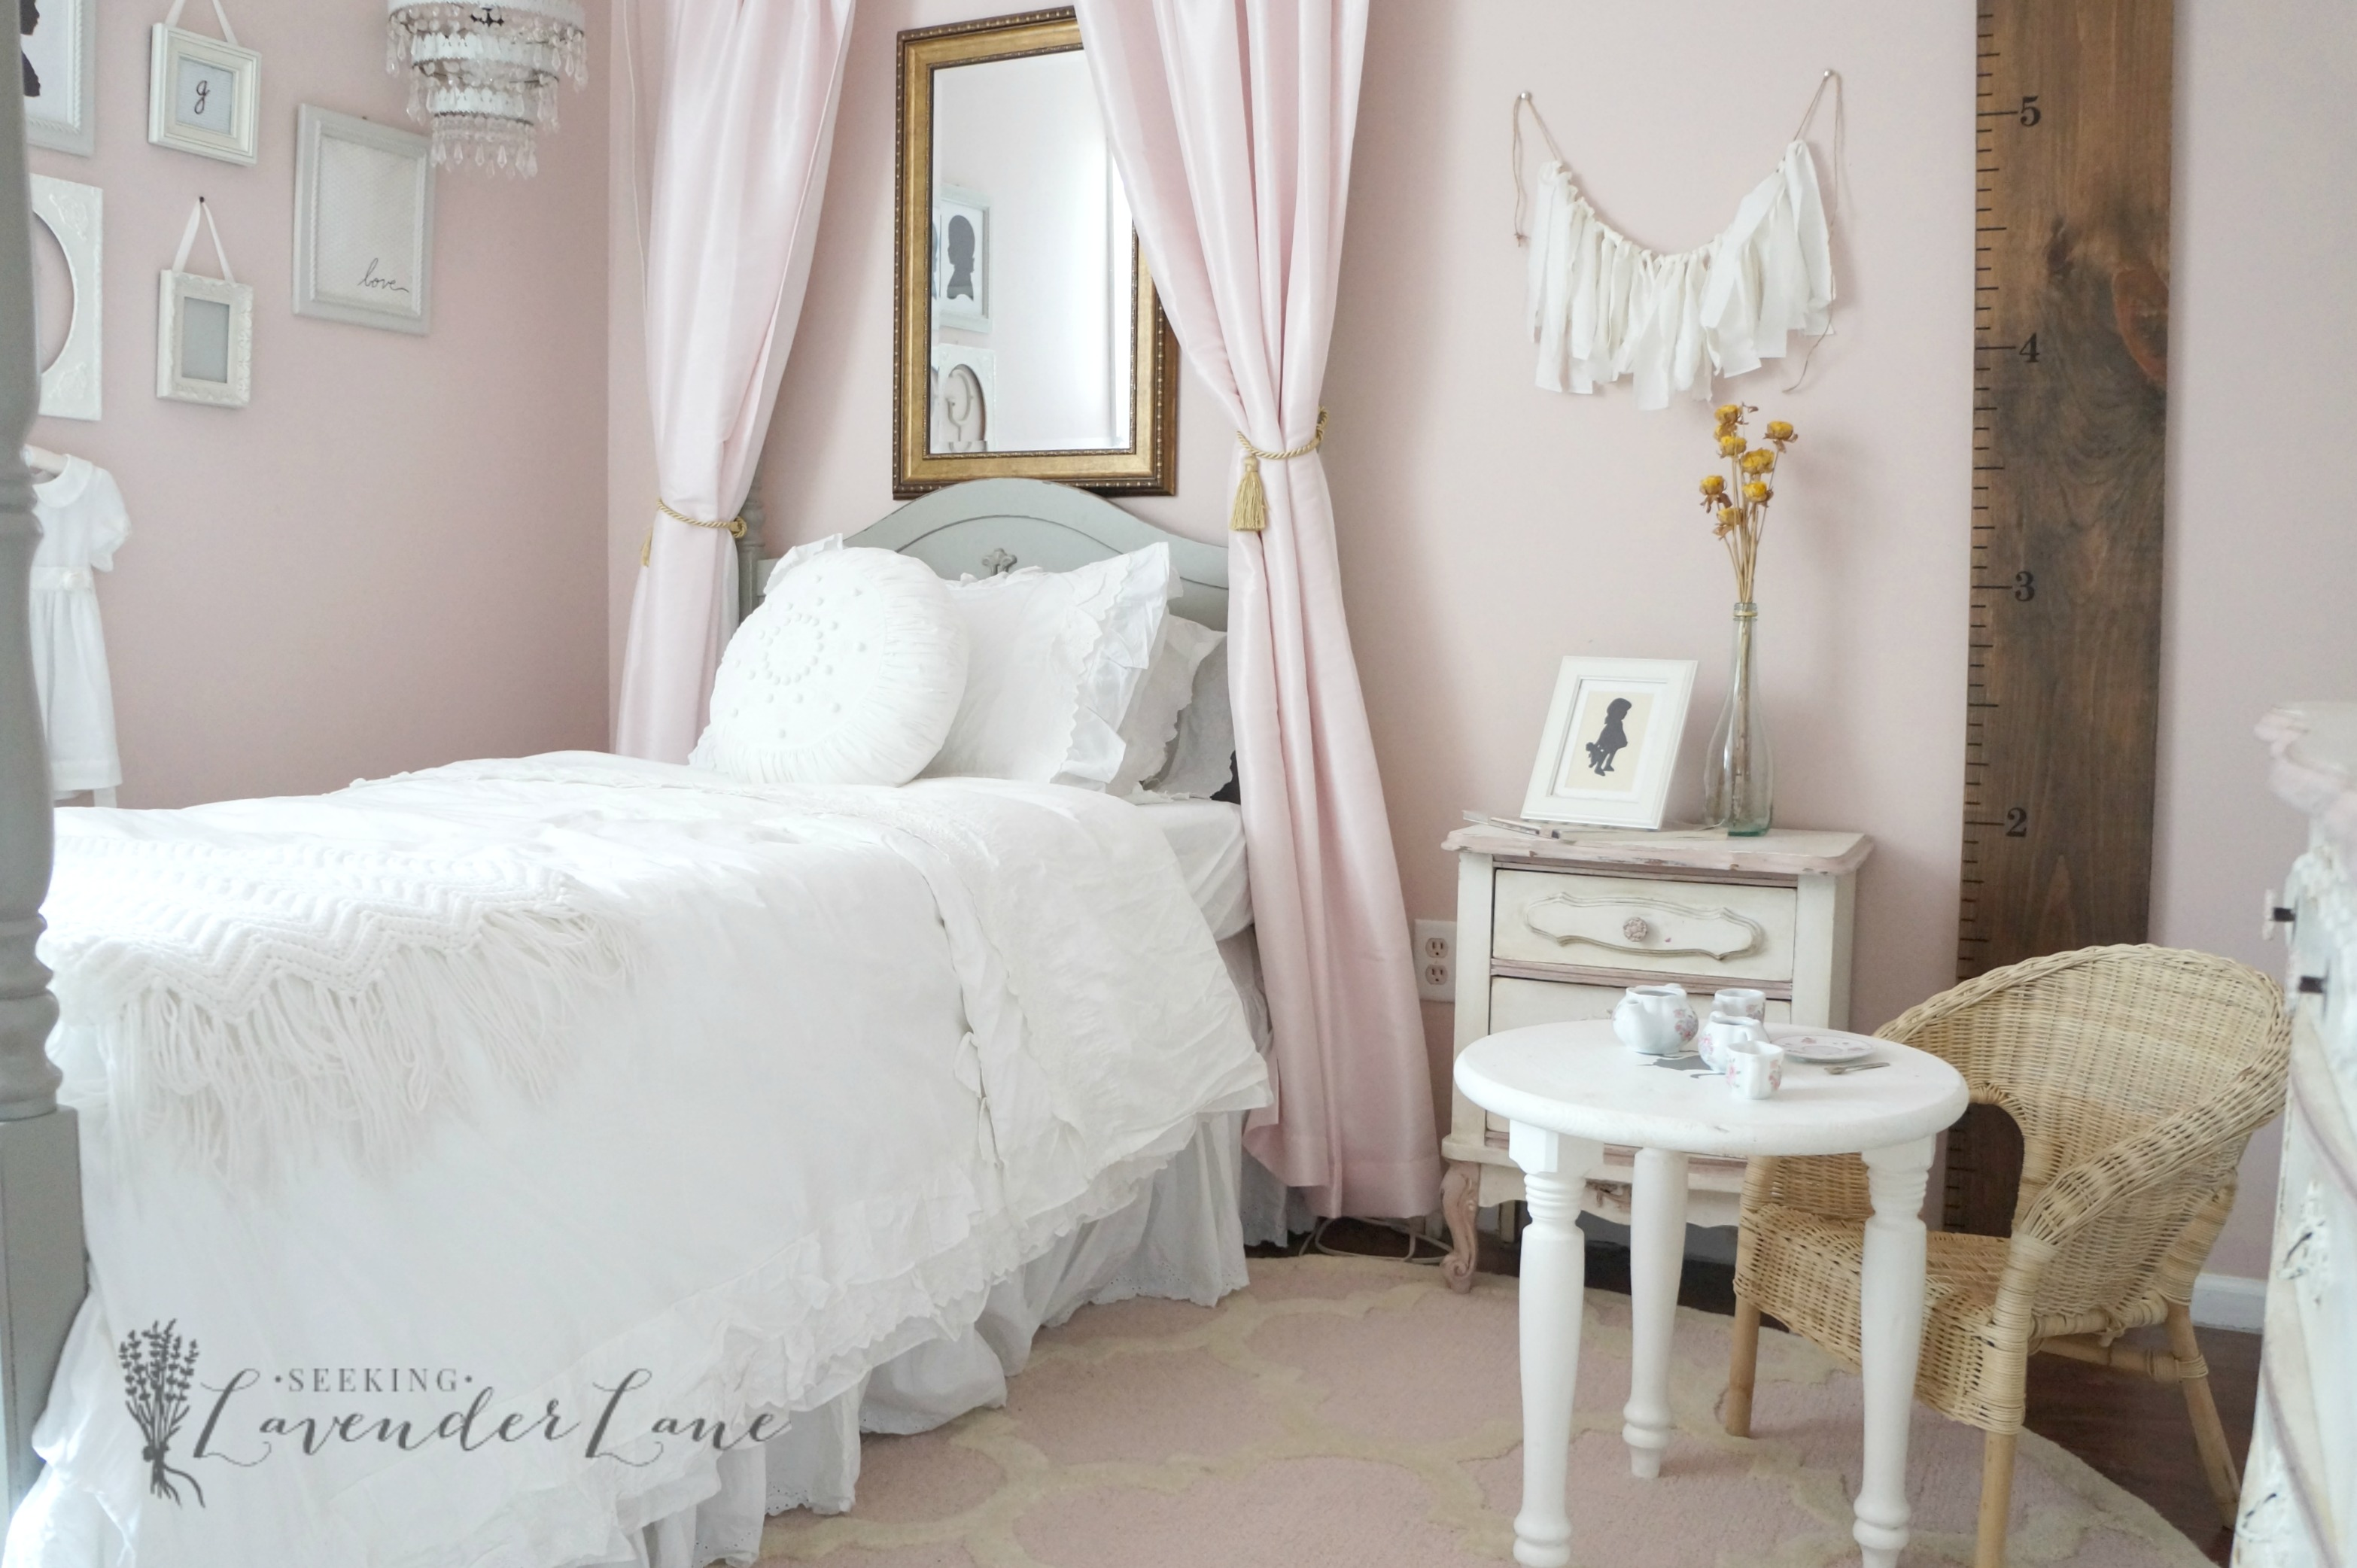 Pink vintage girl 39 s bedroom seeking lavendar lane - Small girls bedroom decor ...